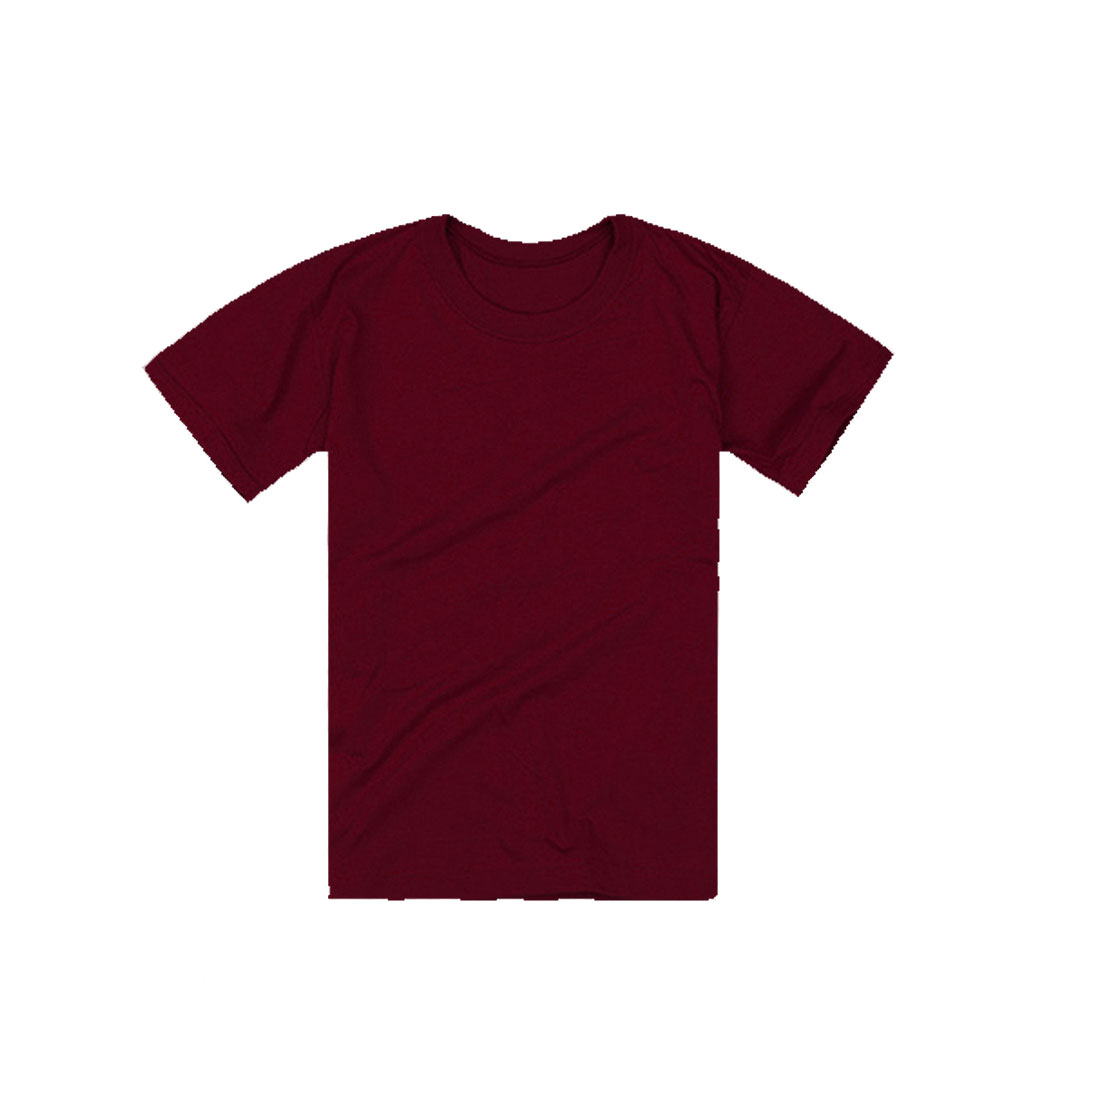 Burgundy M Solid Color Round Neck Slim Fit Design Stylish T-Shirt for Men